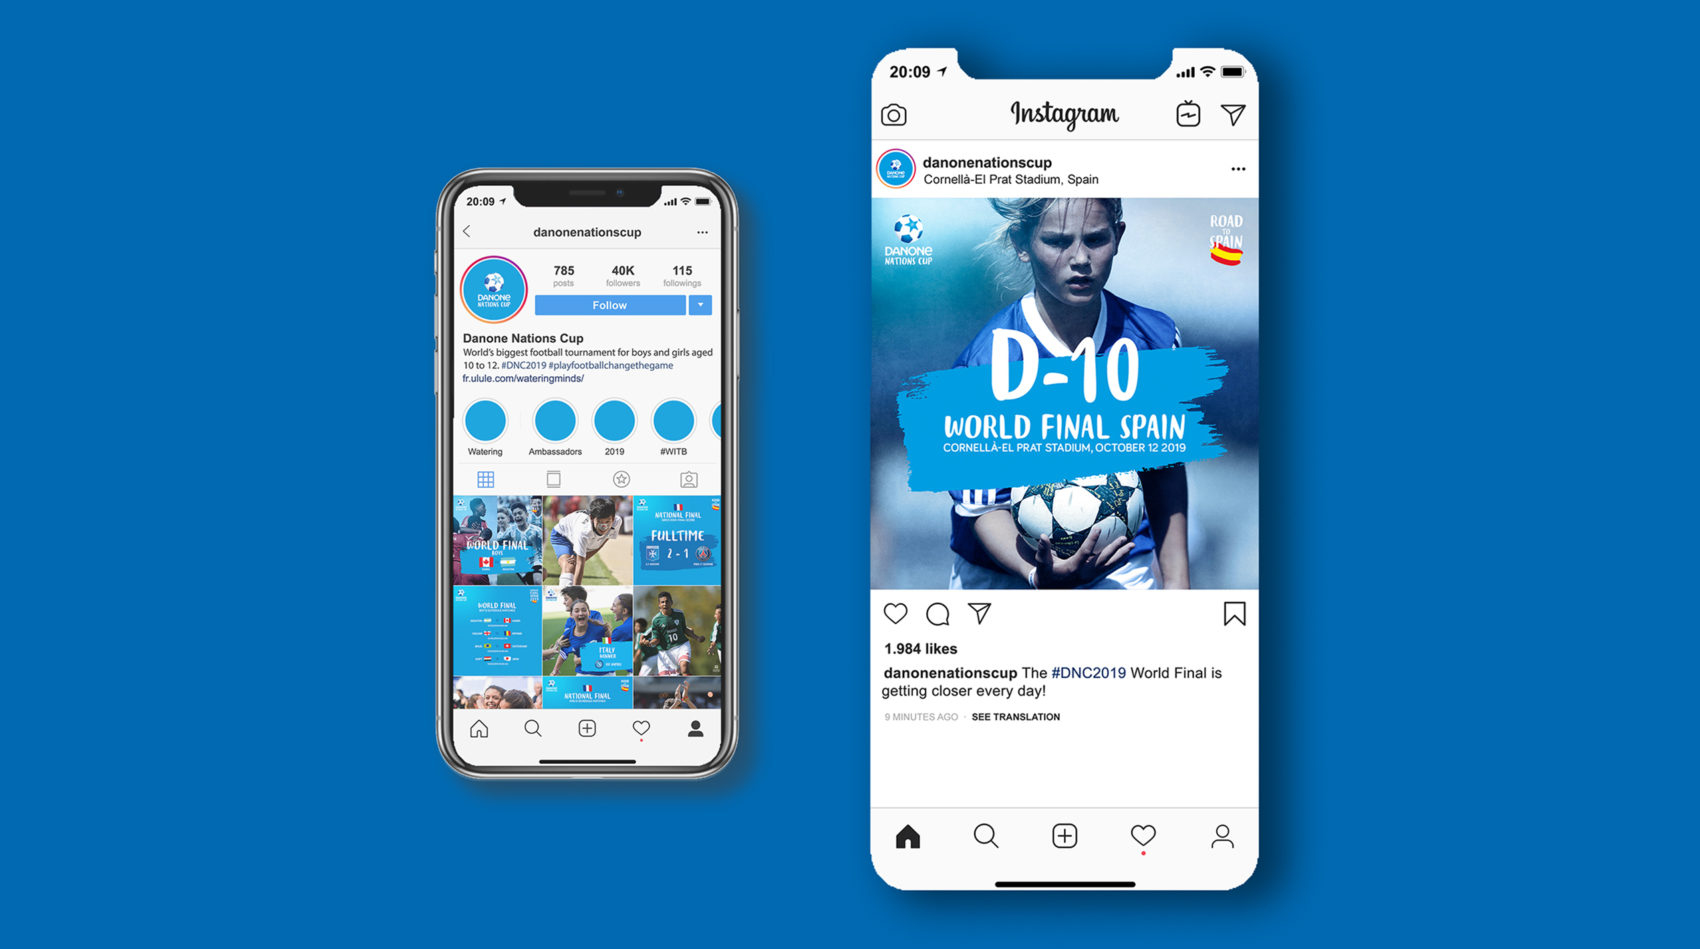 Projet_project_Danone_Nations_Cup_edition_2019_campagne_campaign_communication_globale_global_branding_3